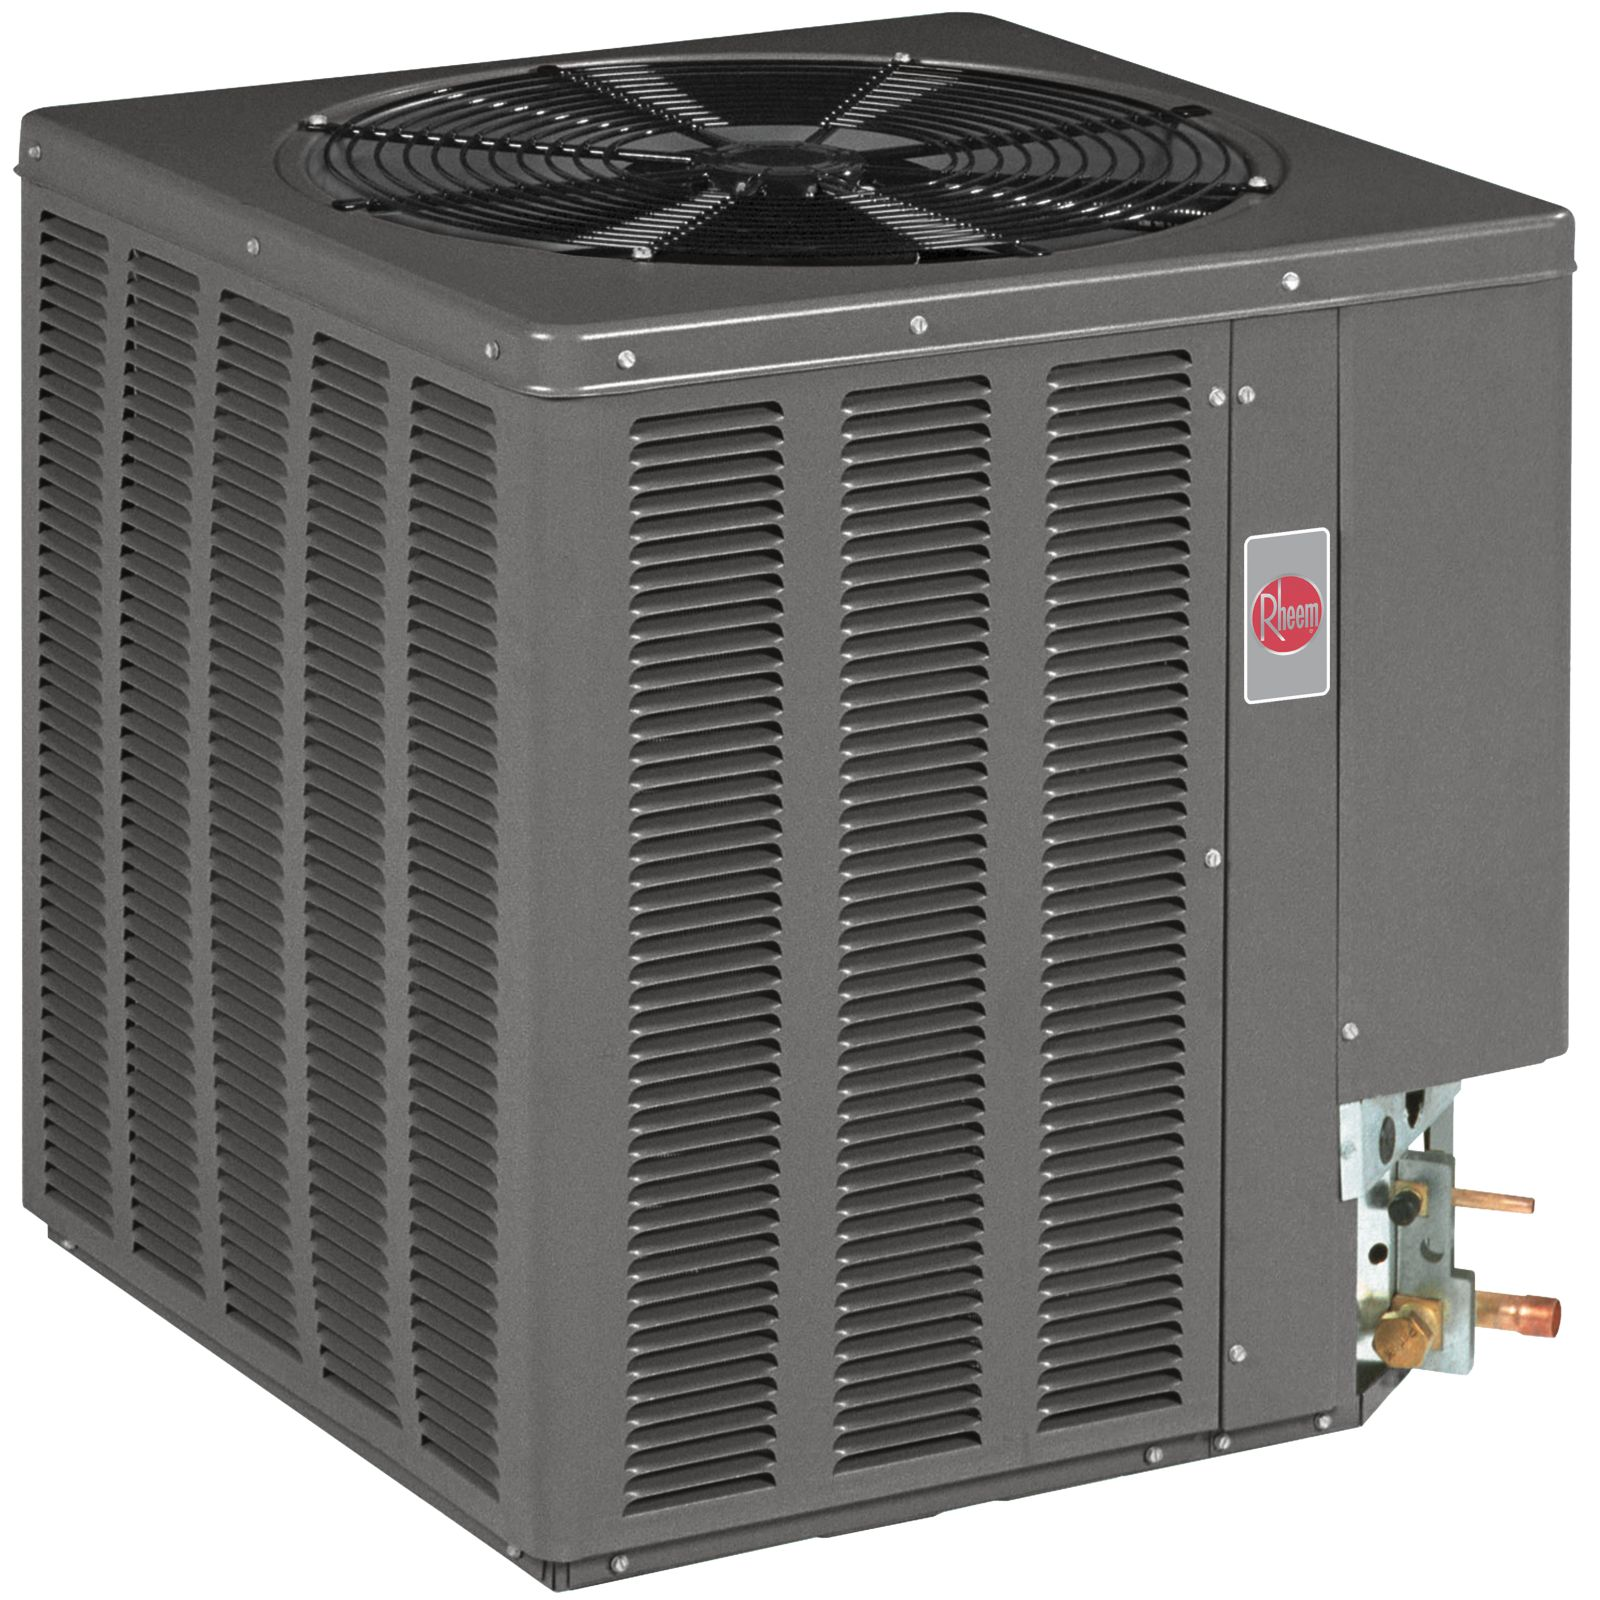 Rheem 14AJM42A01 - Value Series 3 1/2 Ton, 14 SEER, R410A Air Conditioner Condenser